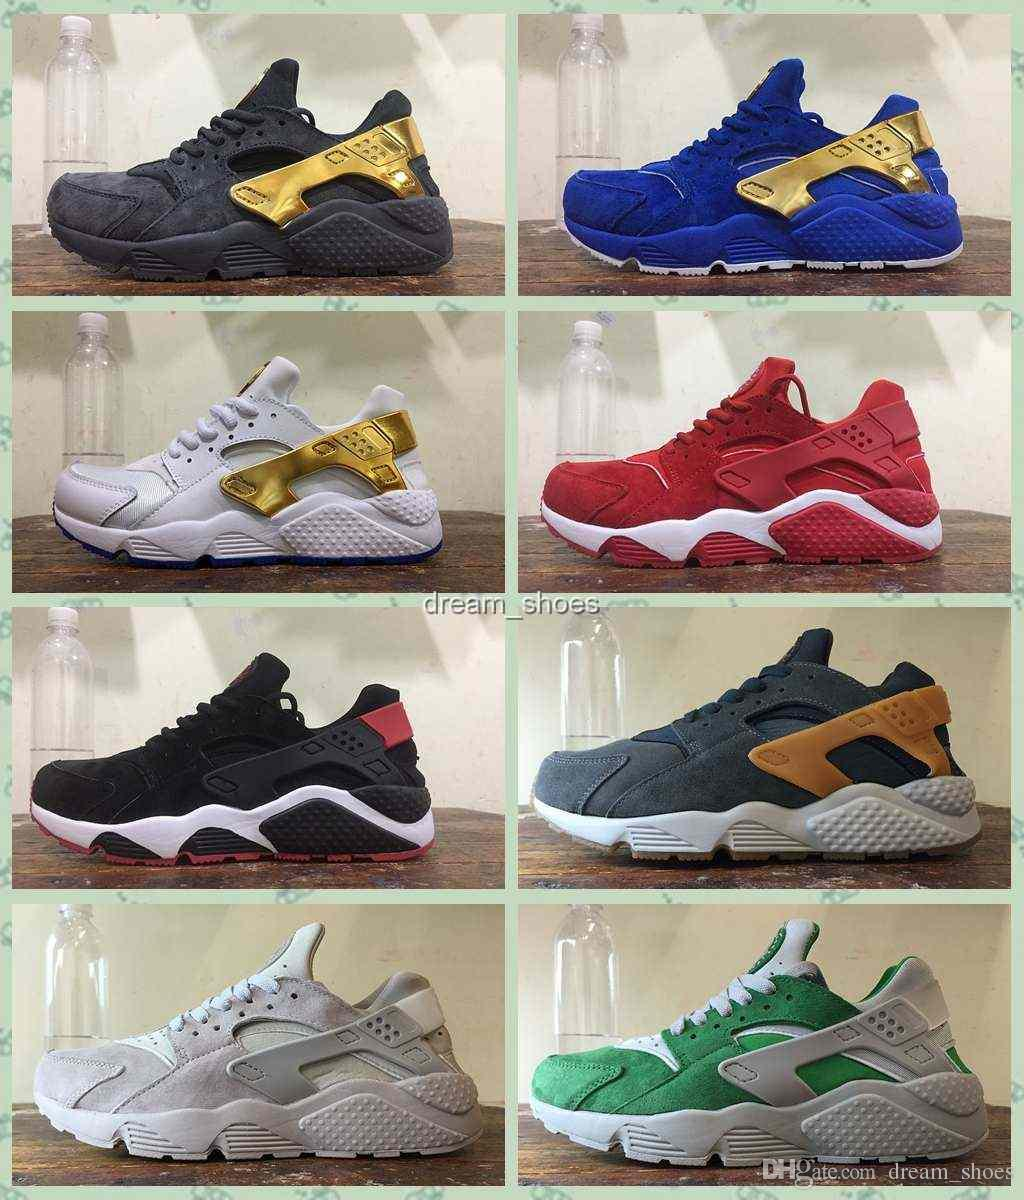 reputable site 3024c 7cb0b 2017 UNDEFEATED X Air Huarache Shoes Women And Mens Air Flight Huarache  Nubuck Running Shoes Sneakers Huaraches Sneakers Shoes Size 36 46 Men  Sports Shoes ...